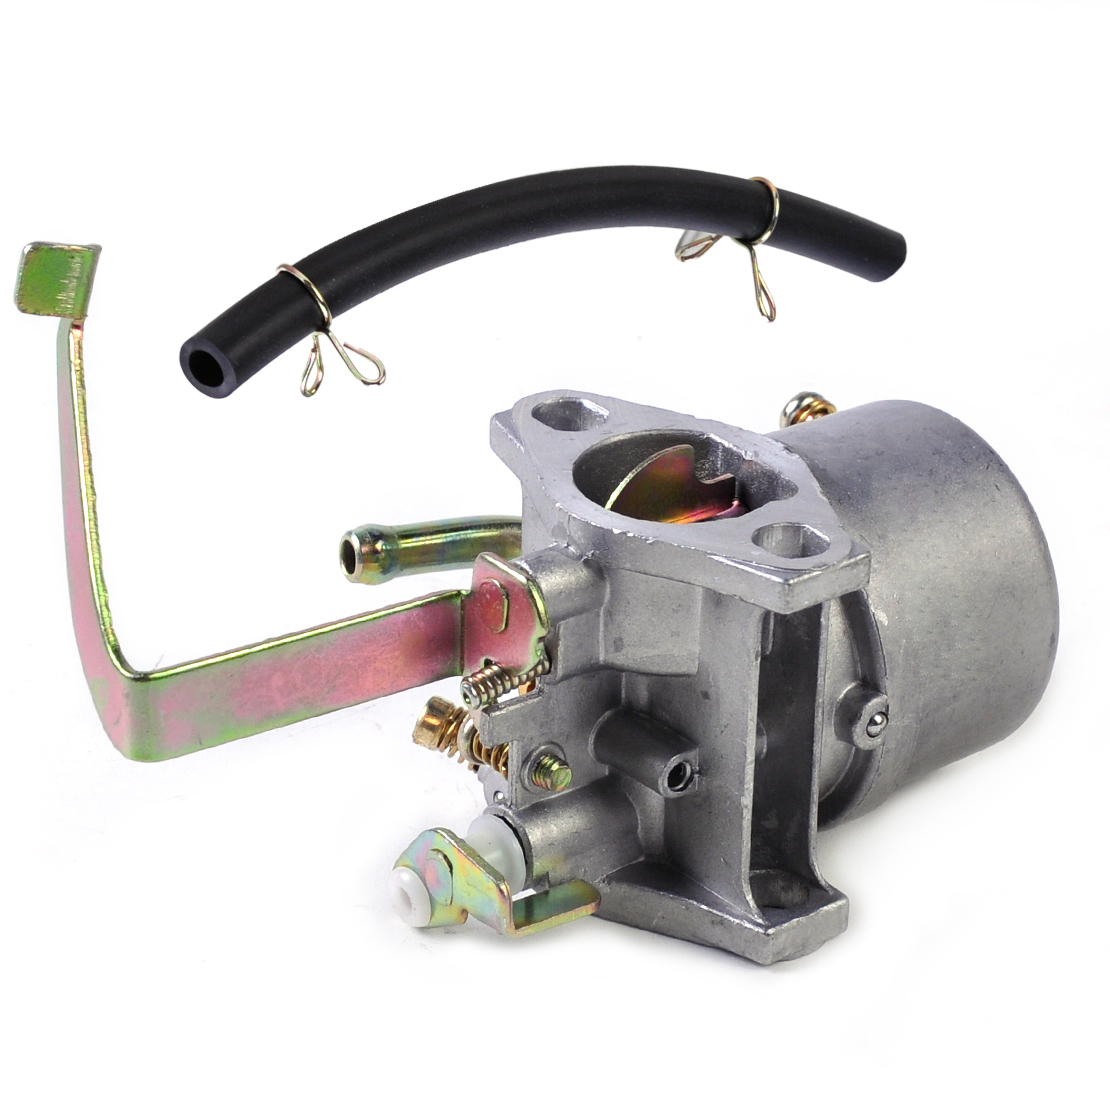 DWCX New Motorcycle Carburetor Carb 60338 66619 for Harbor Freight Chicago Electric Storm Cat 900 Watts 63CC/64CC 2HP Generator цена